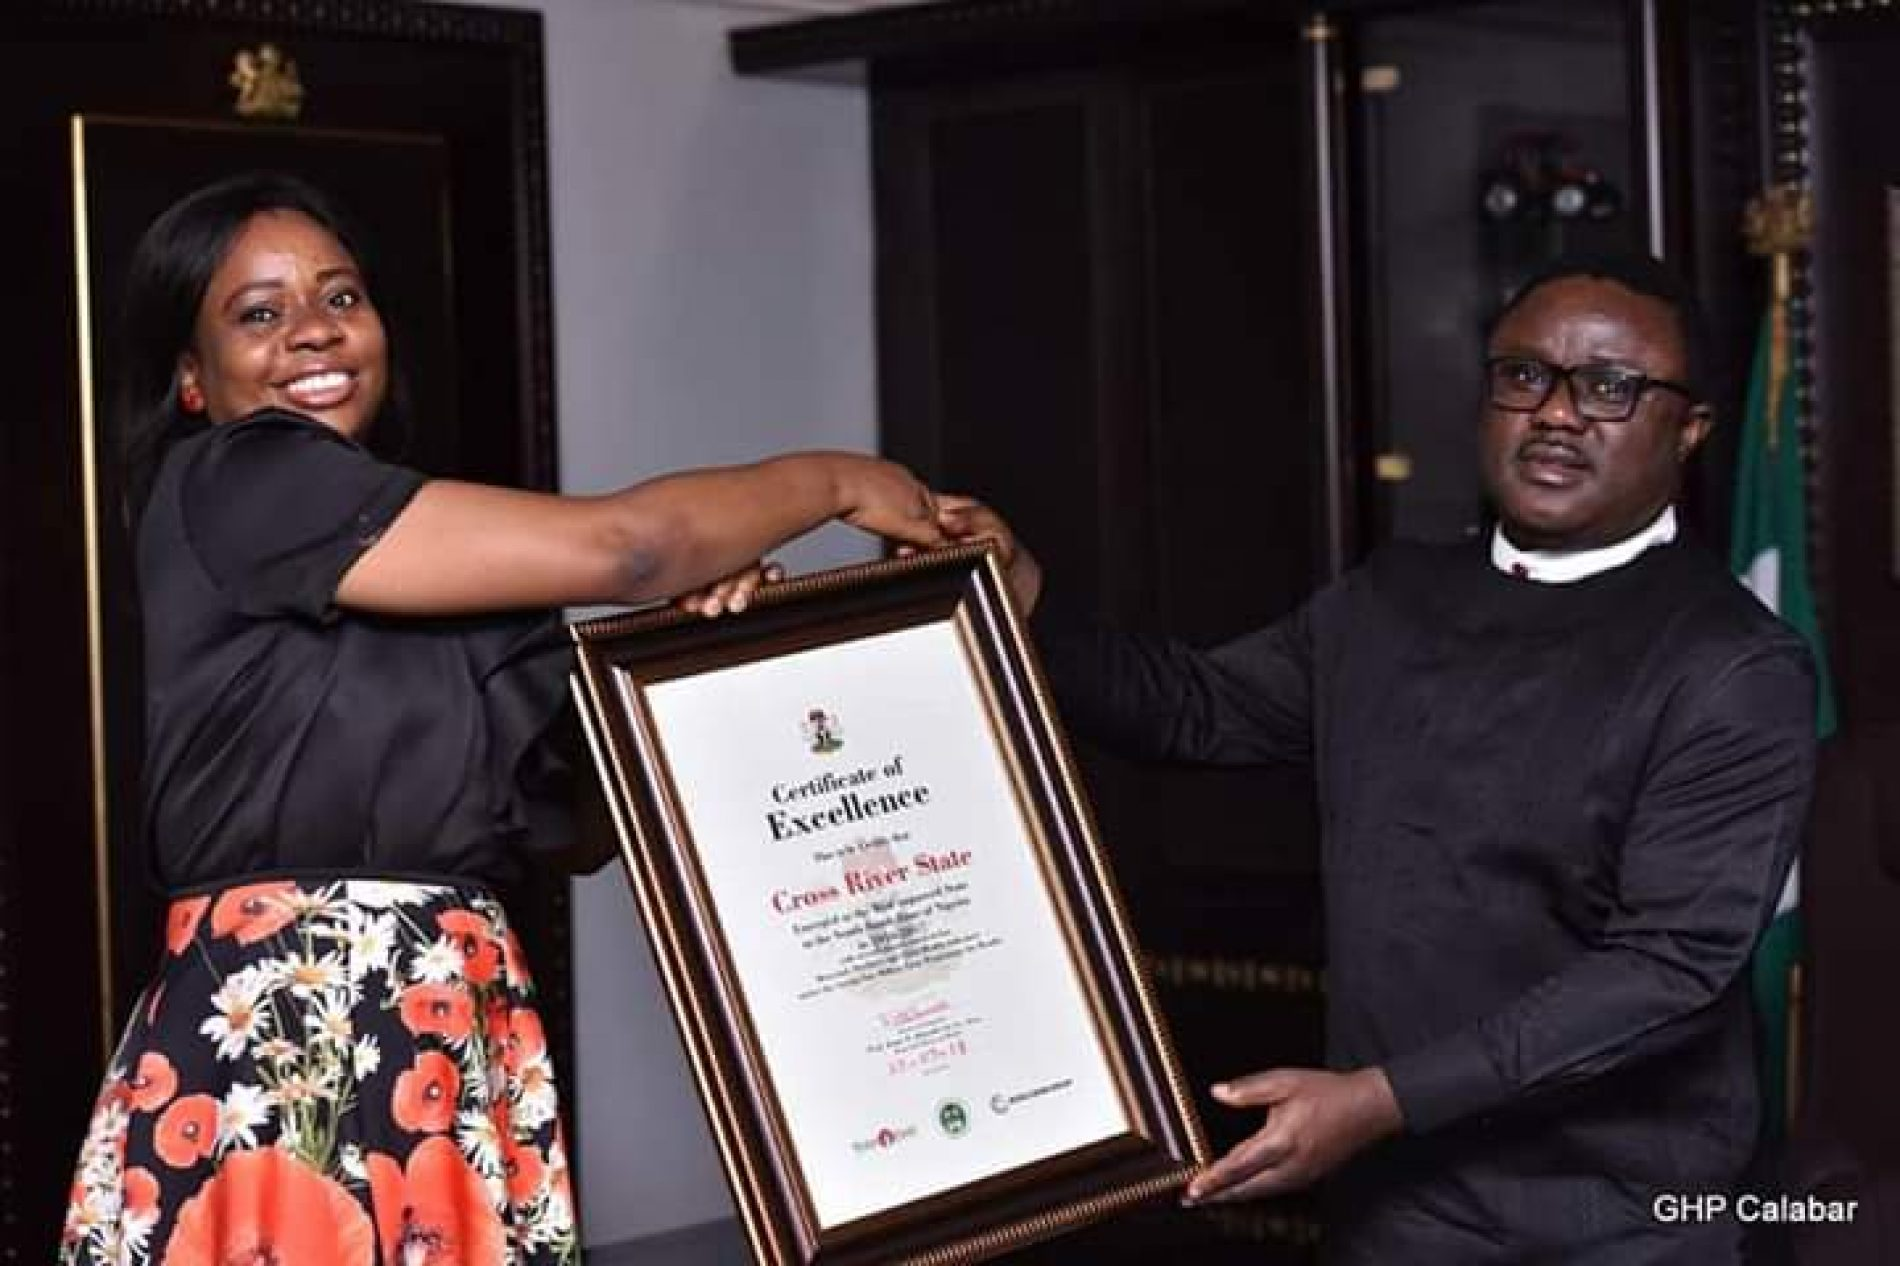 Cross River State Commissioner for Health, Dr (Mrs) Inyang Asibong, gives back to society